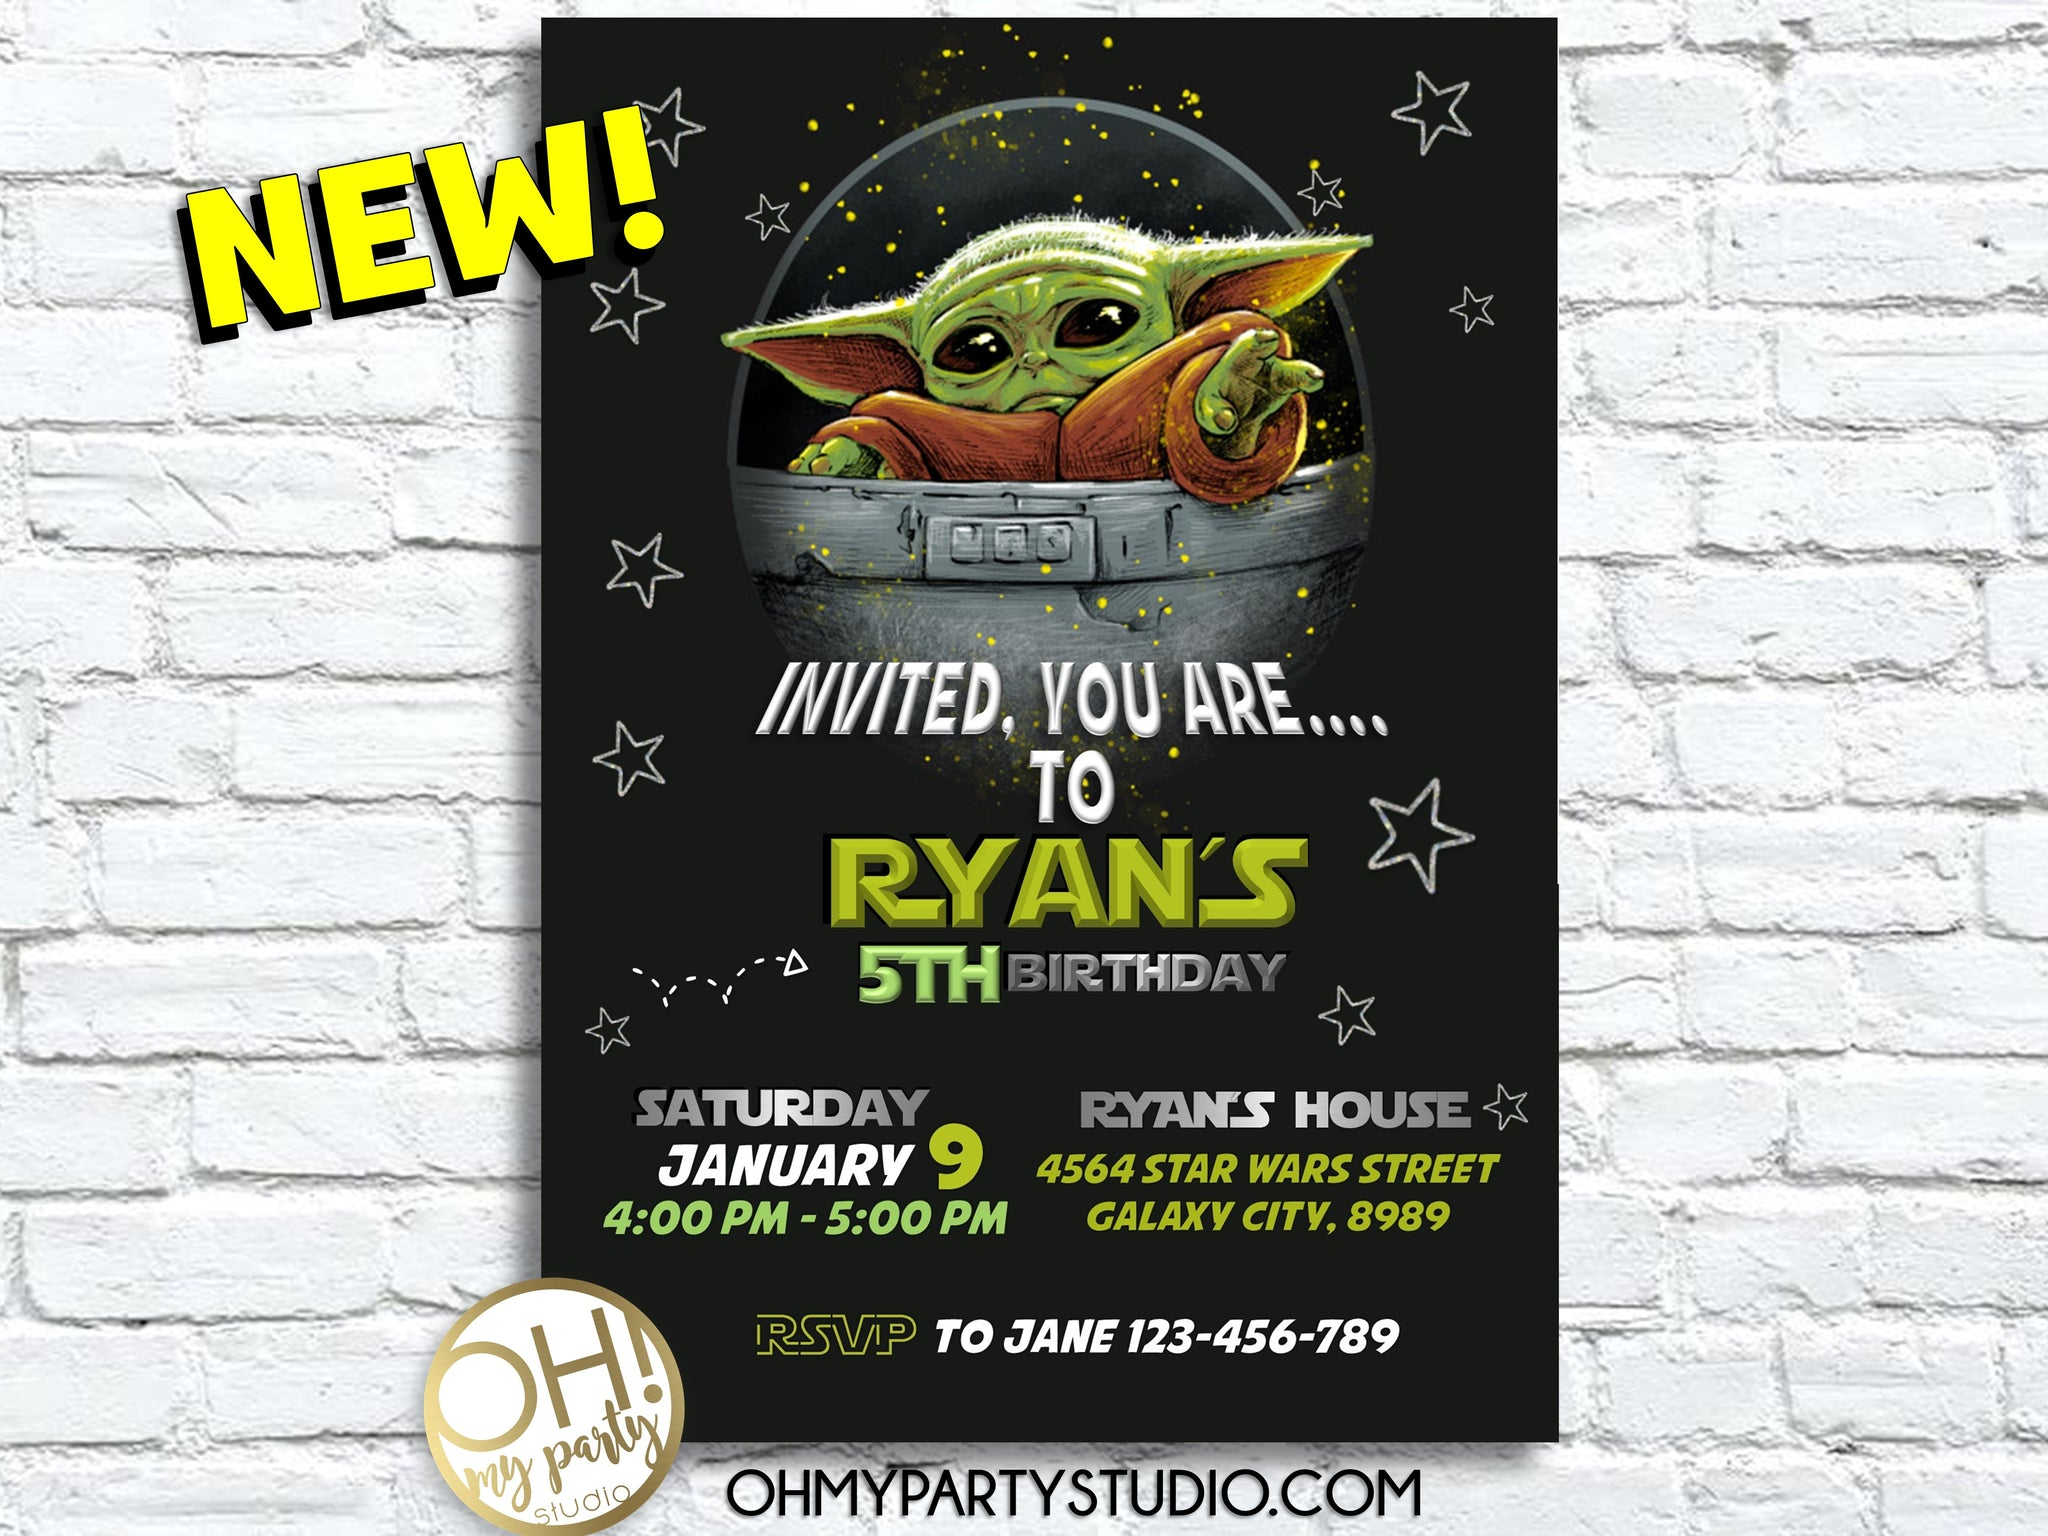 BABY YODA INVITATION, BABY YODA INVITE, BABY YODA INVITATIONS, JEDY INVITATION, BABY YODA BIRTHDAY INVITATION, BABY JODA PARTY, BABY YODA BIRTHDAY, BABY YODA INVITATION, BABY YODA BIRTHDAY INVITATION, BABY YODA PARTY, BABY YODA INVITATIONS, BABY YODA INVITATION